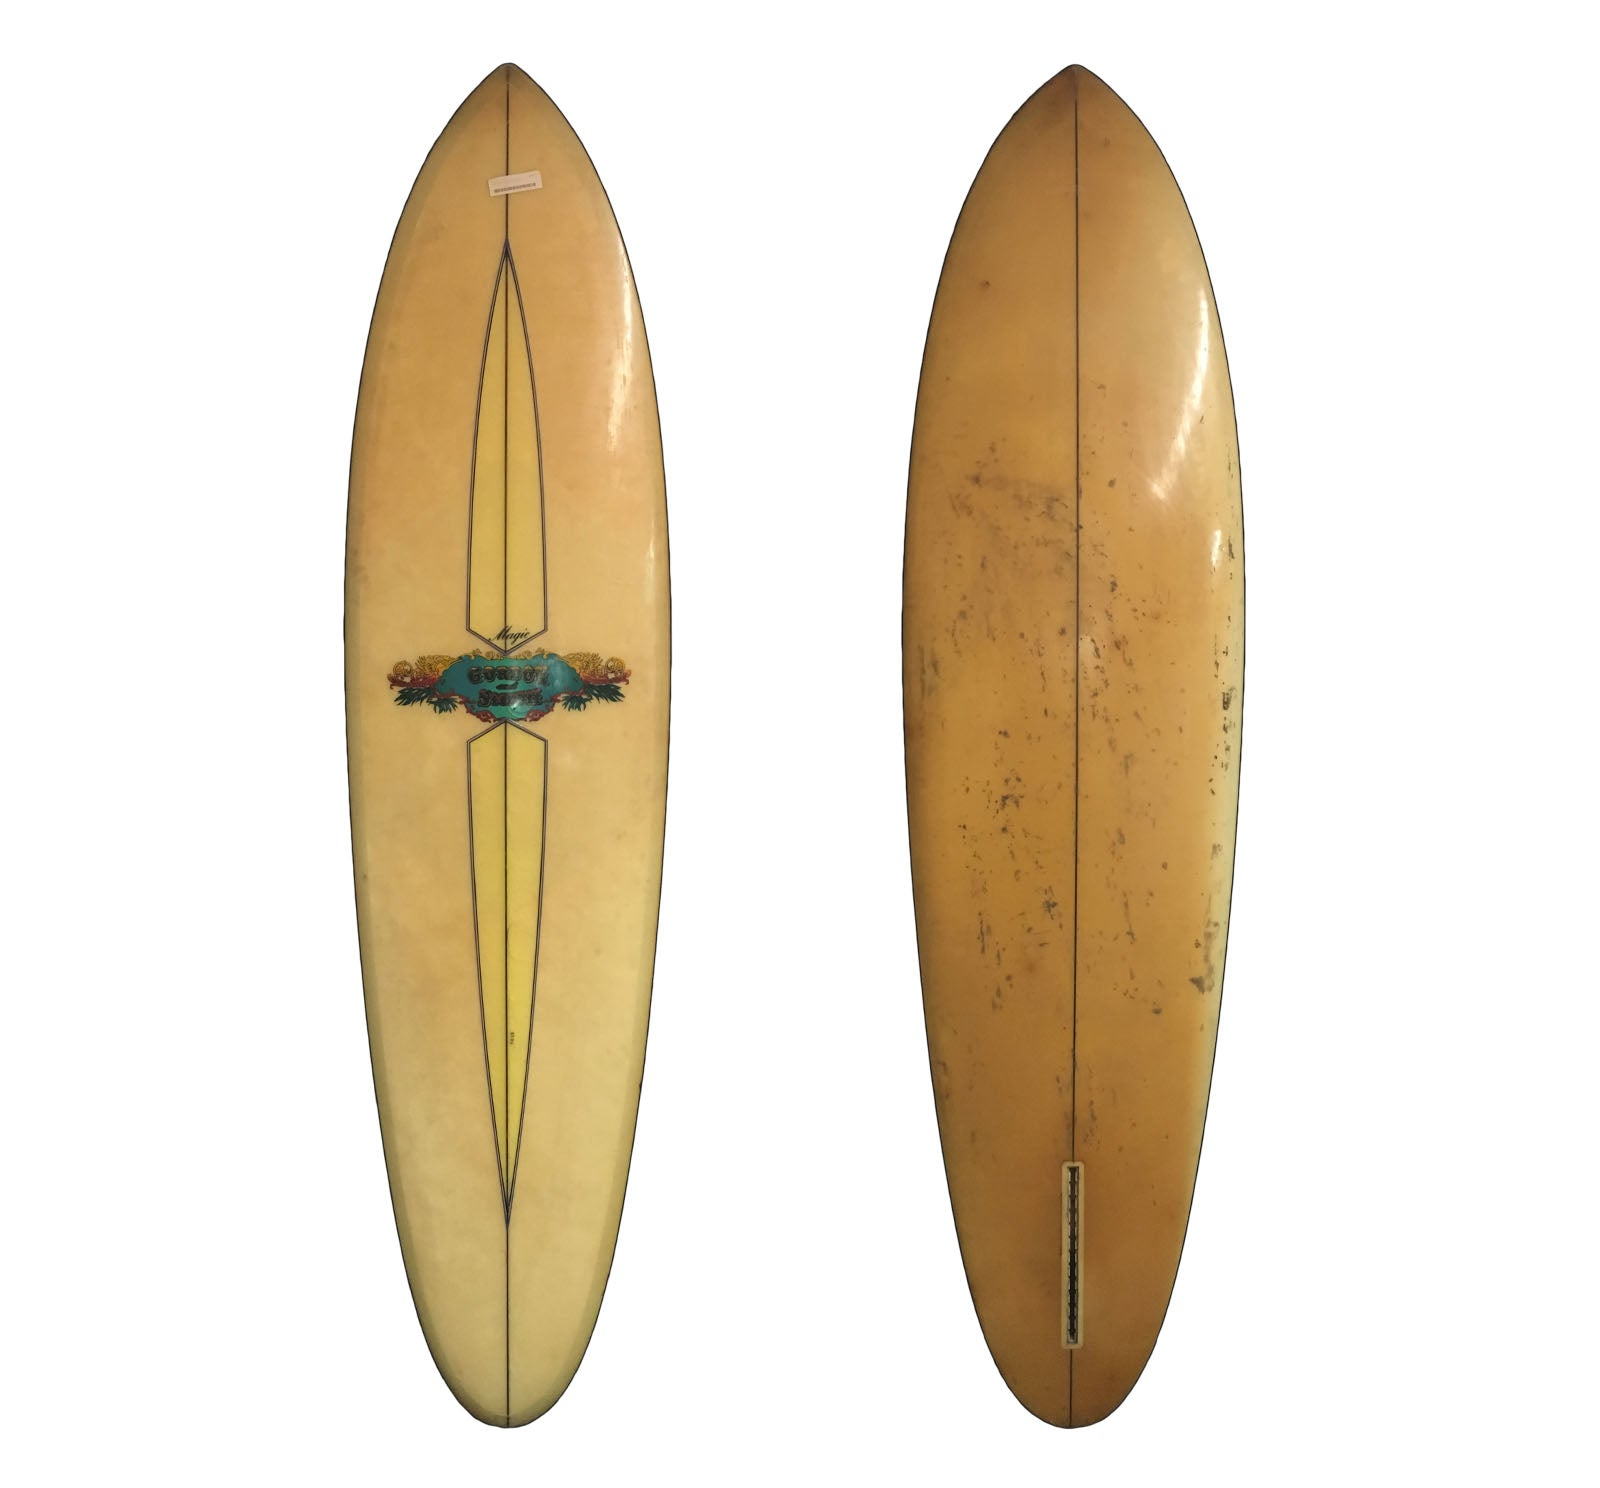 Gordon and Smith Magic Model 7'9 Collector Surfboard